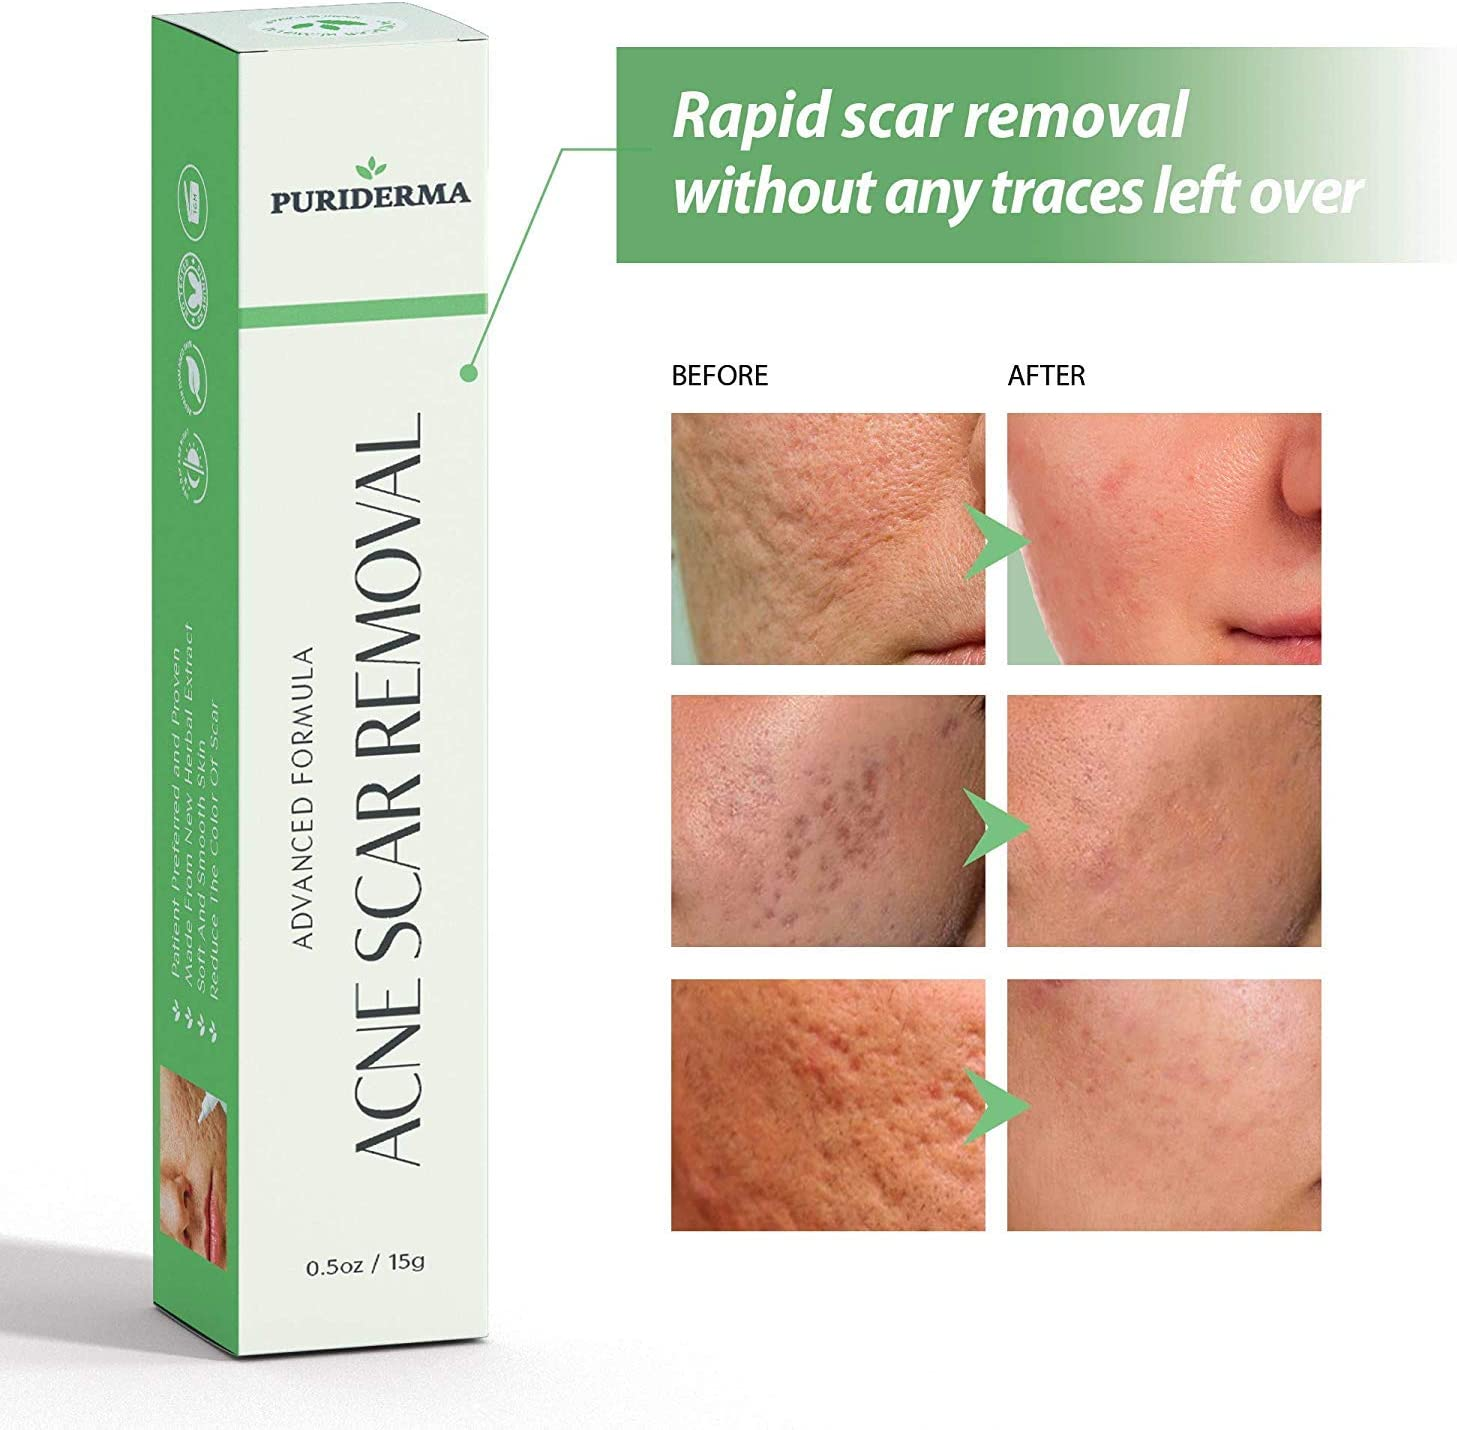 Amazon Com Acne Scar Removal Cream Treatment For Face Remove Lighten Old New Scars Spots Marks Natural Gentle Effective Herbal Extracts Formula By Puriderma 0 5oz 15g Kitchen Dining